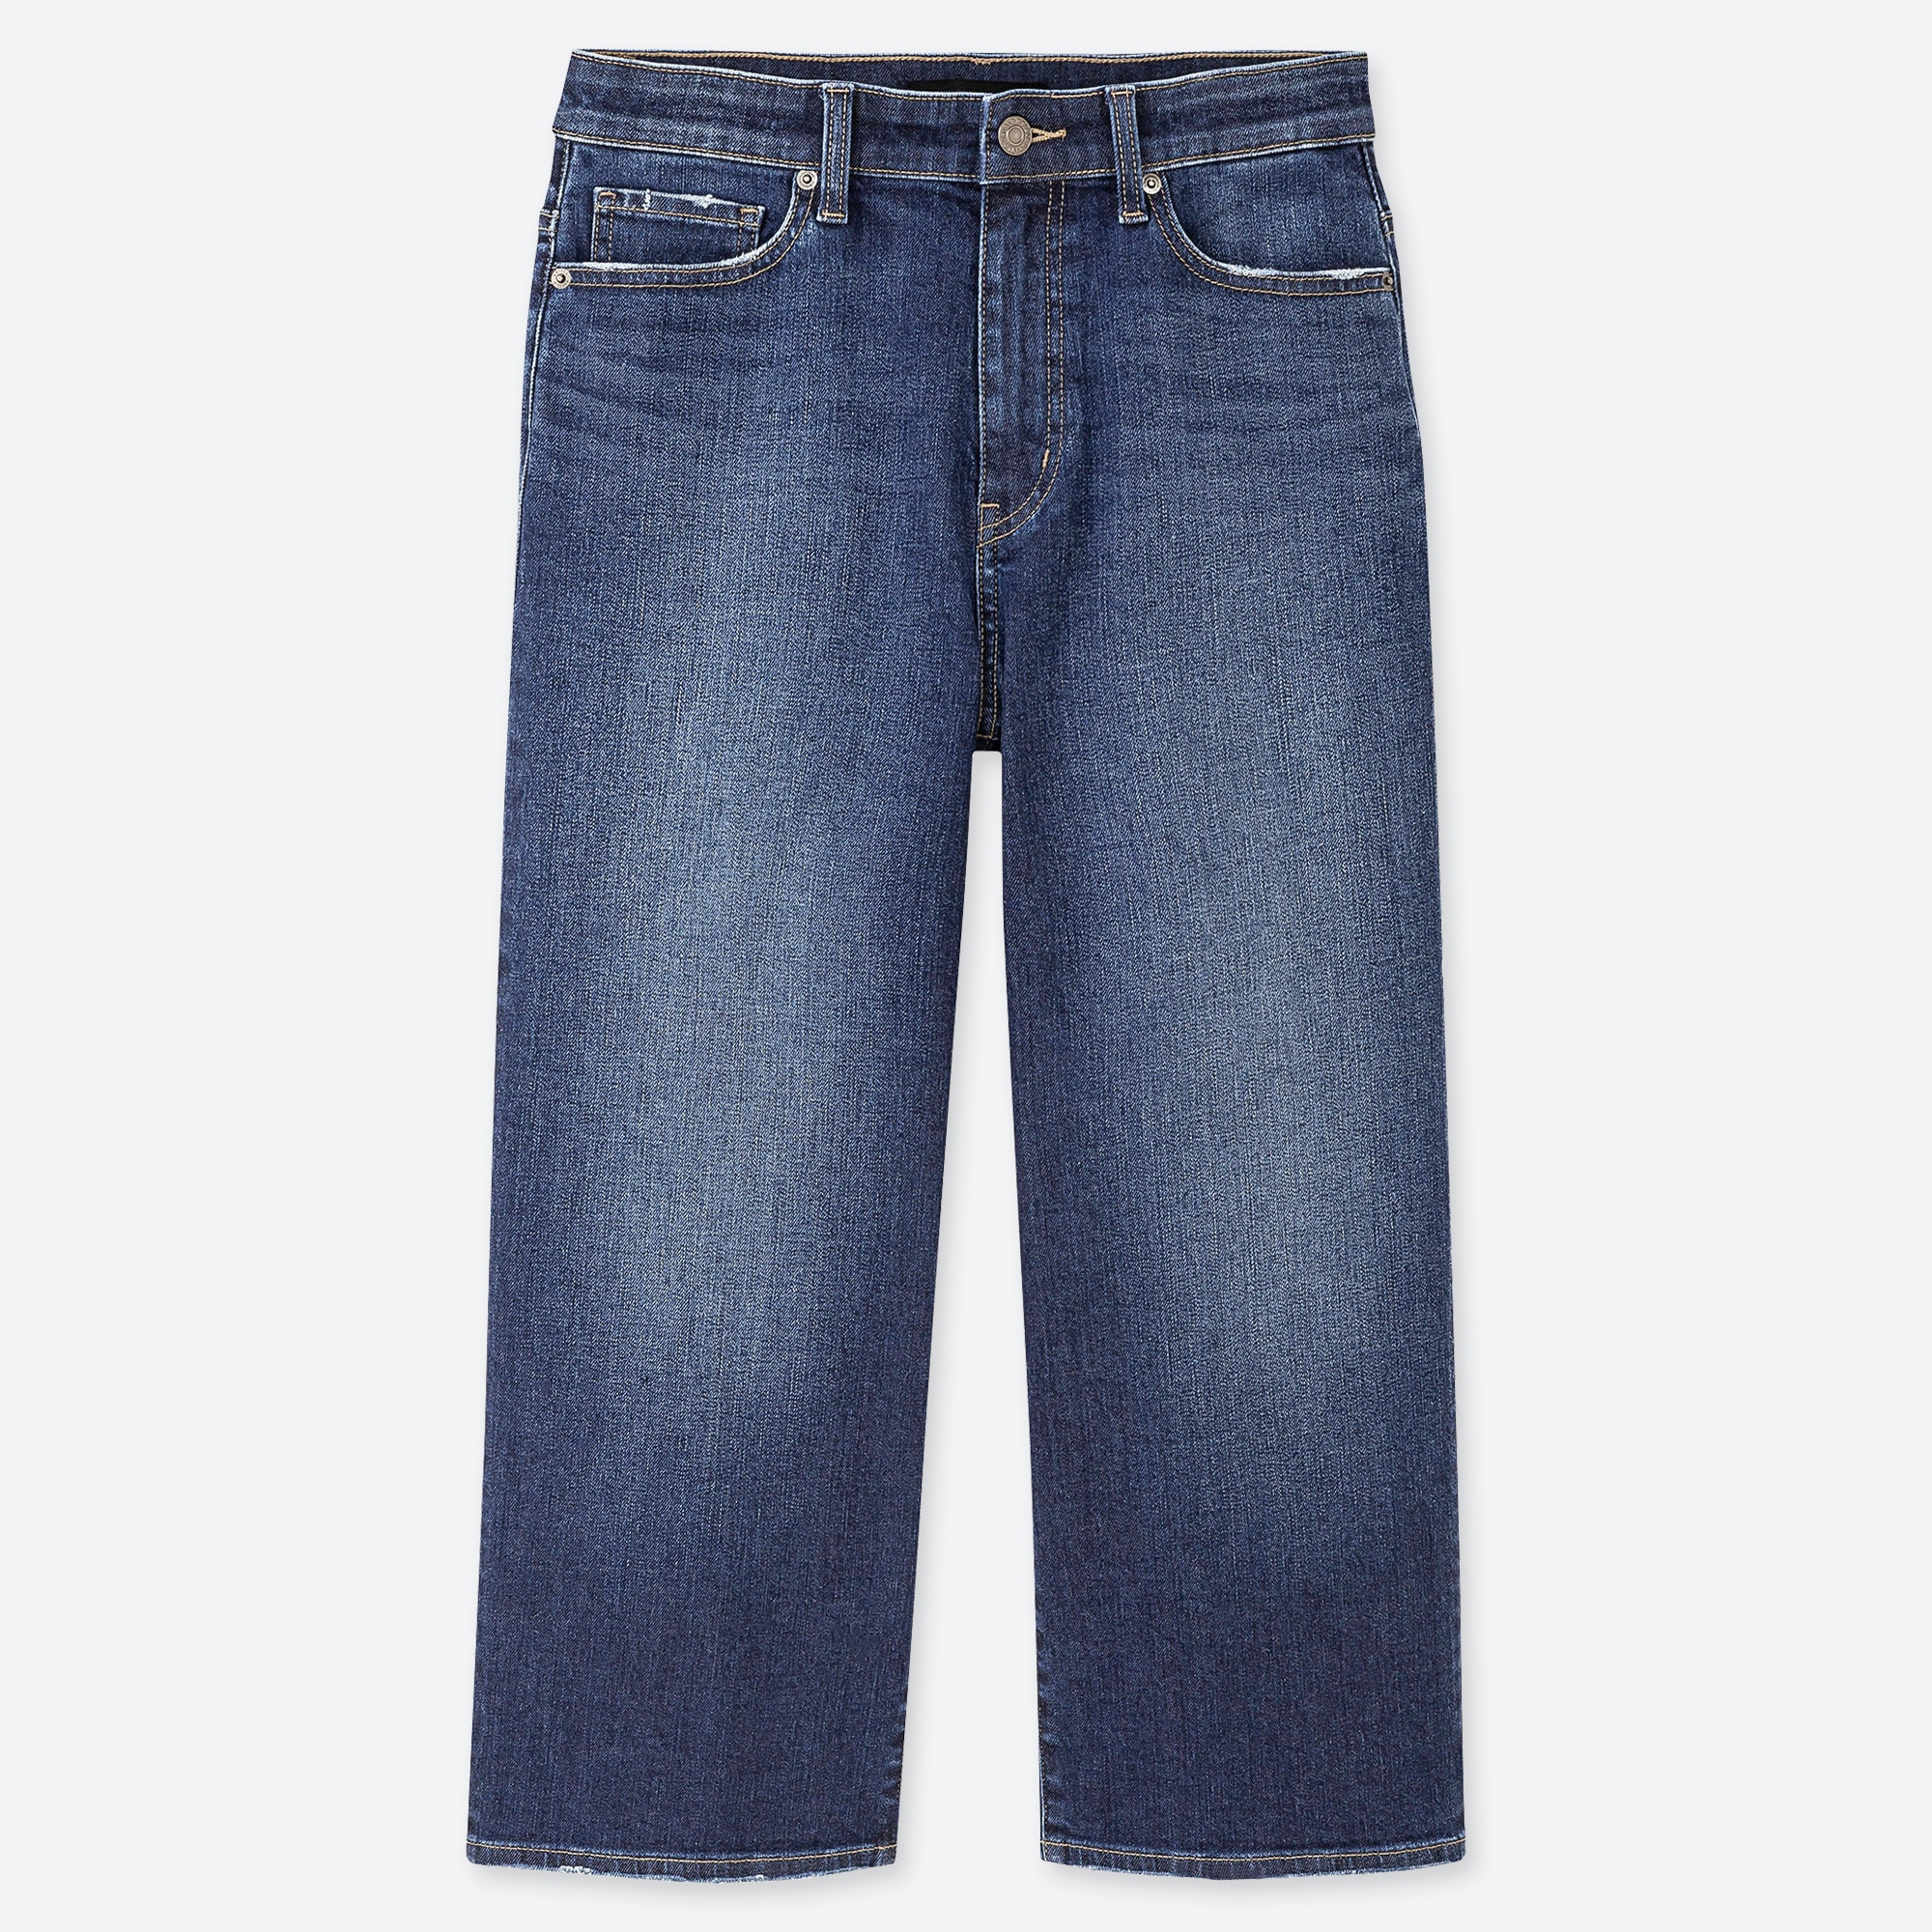 New Womens Blue Crop Ankle Wide Leg NEXT Jeans Size 20 18 16 14 12 10 6 RRP £28